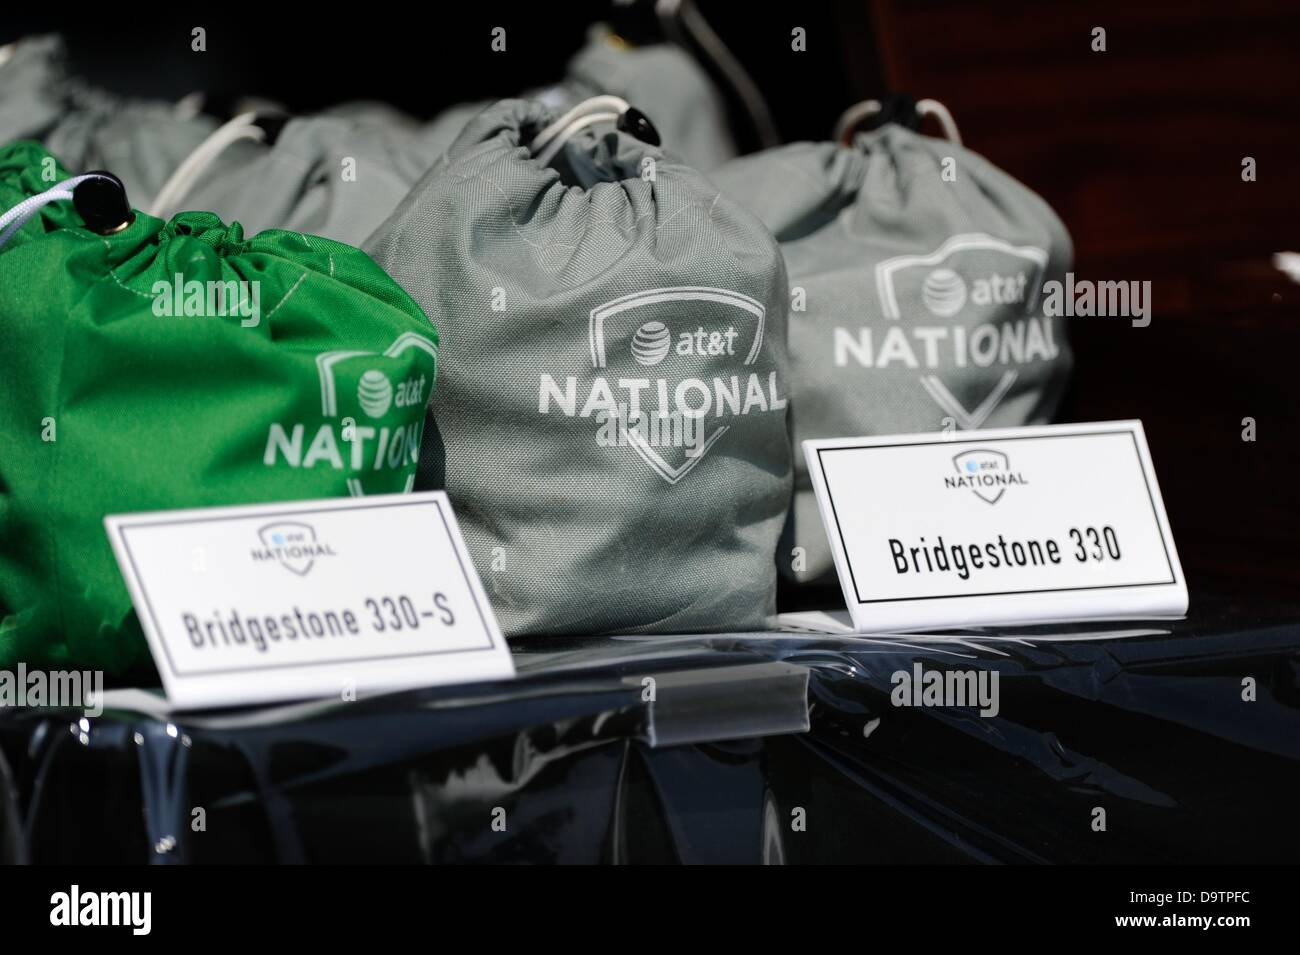 June 26, 2013 - Bridgestone ball bags await players during Pro-Am play at Congressional Country Club in Bethesda - Stock Image